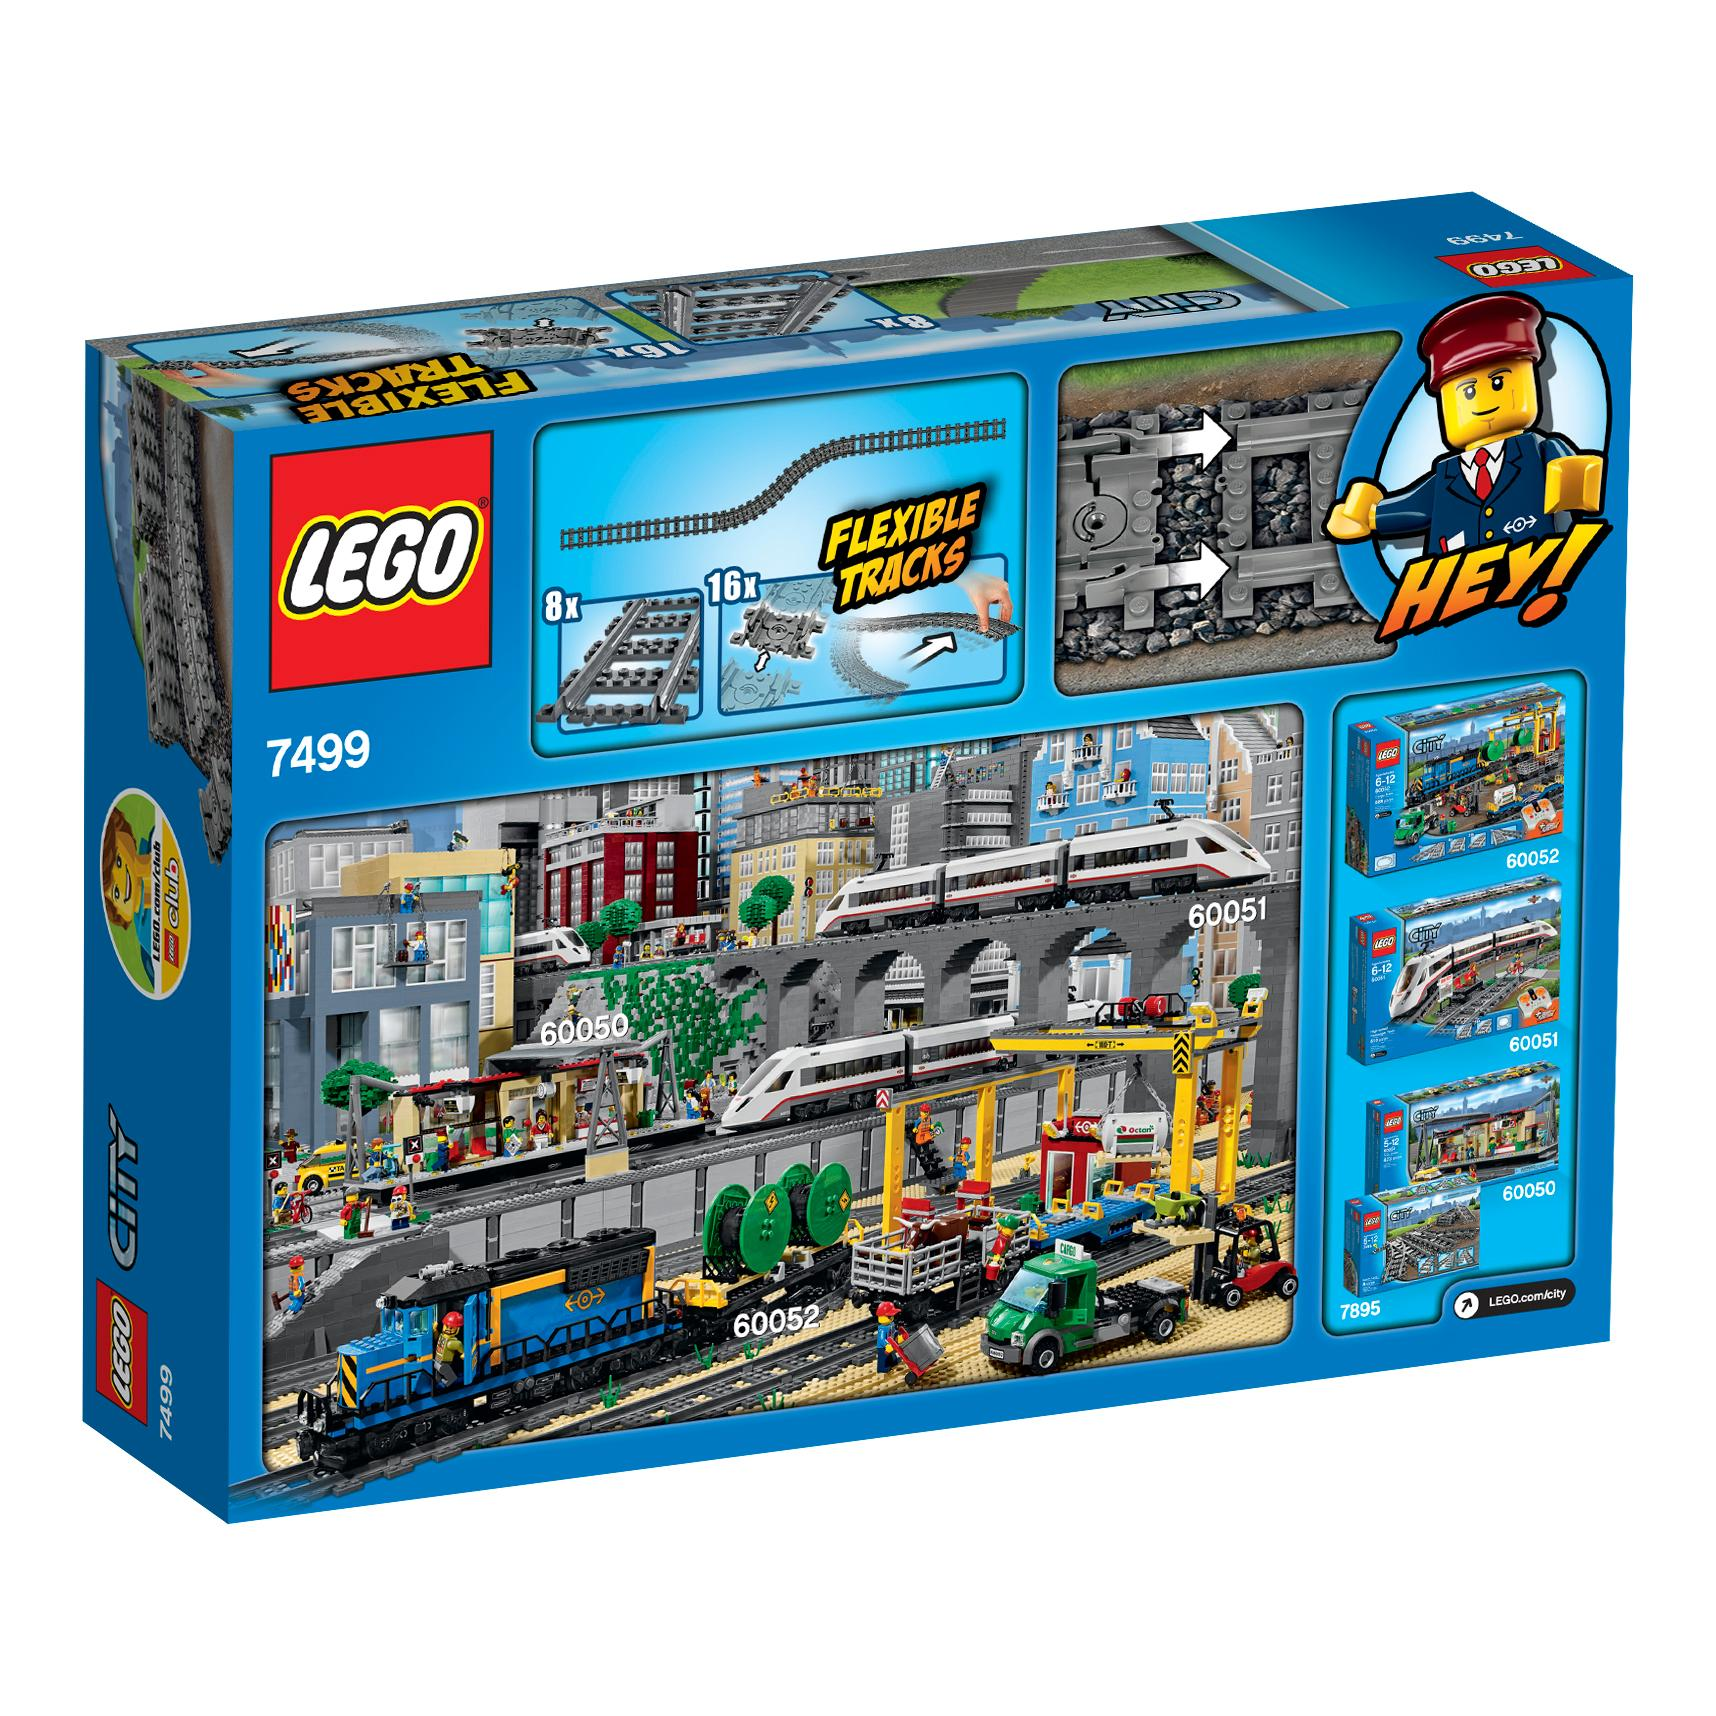 Lego City Toys : Amazon lego city flexible tracks train toy